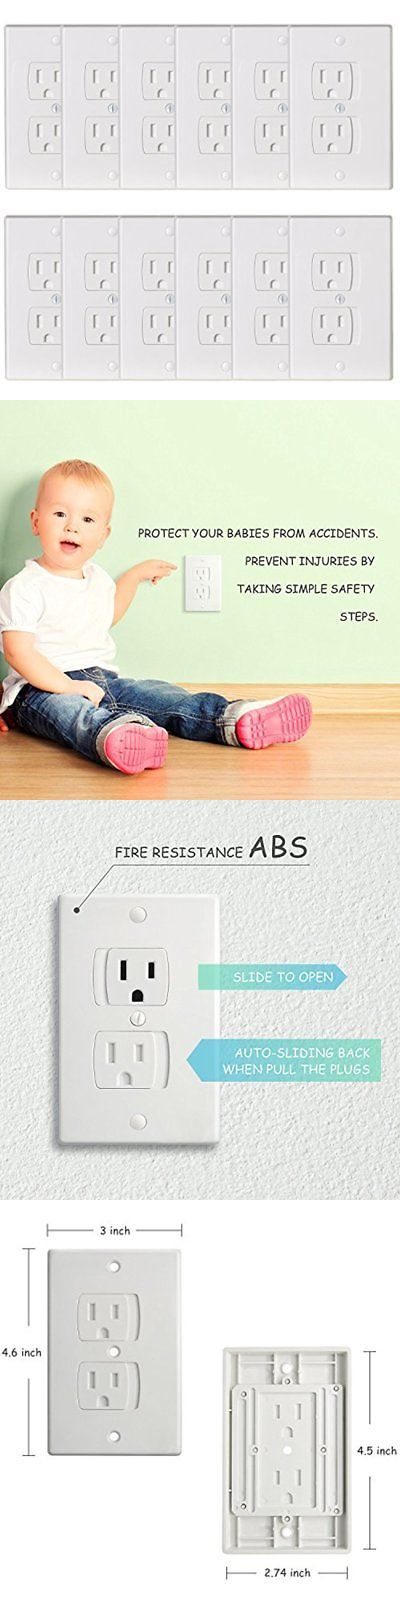 Outlet Covers 134764: 12 Pack-Universal Electrical Outlet Covers, Baby Safety Self-Closing Wall Socket -> BUY IT NOW ONLY: $36.86 on eBay!